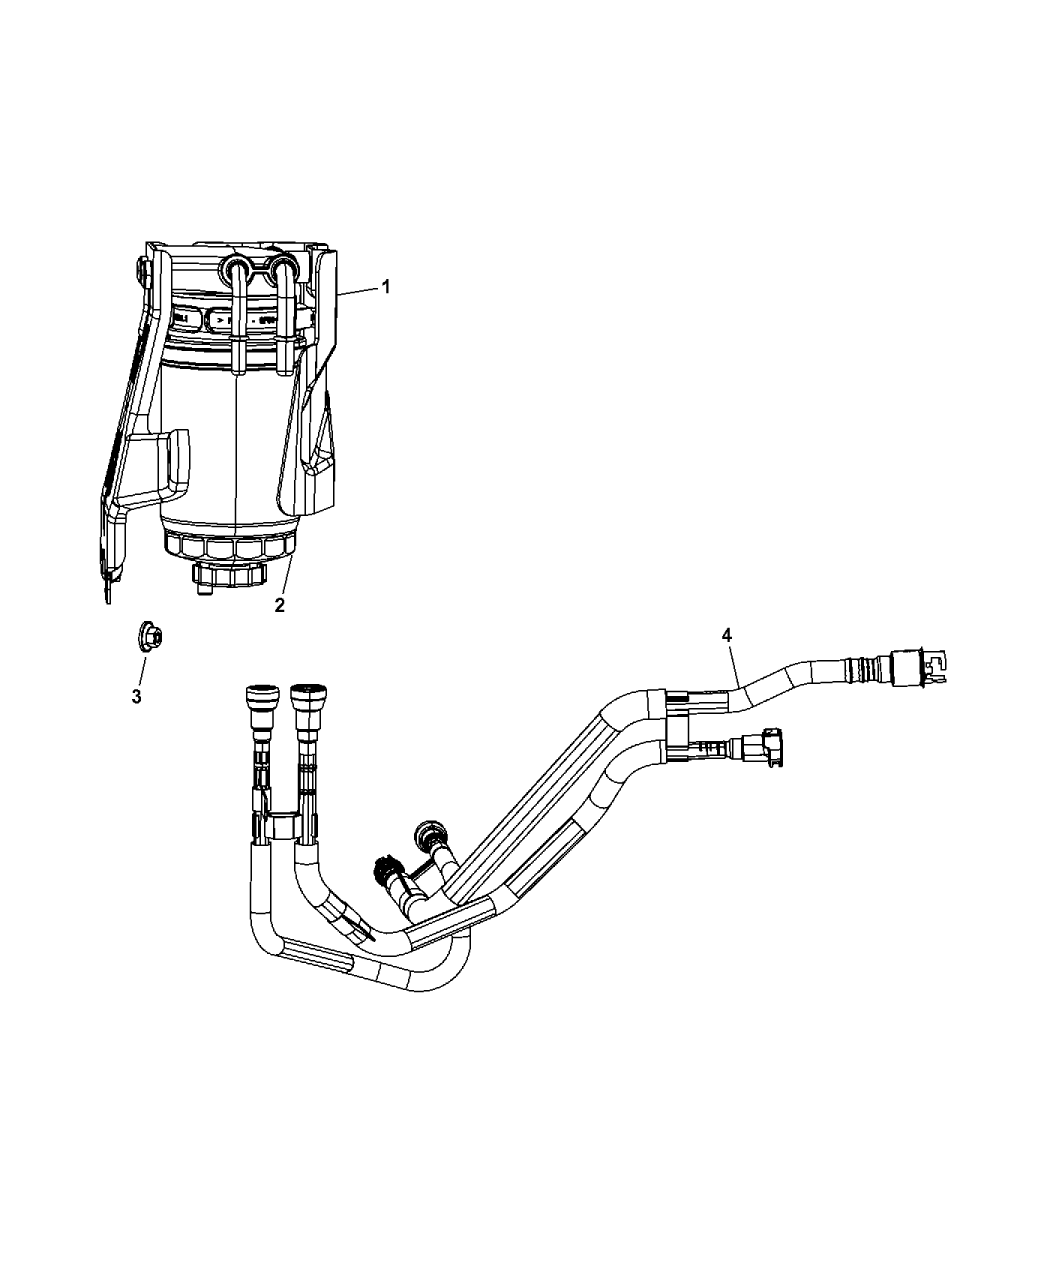 07326 jeep compass fuel filter location